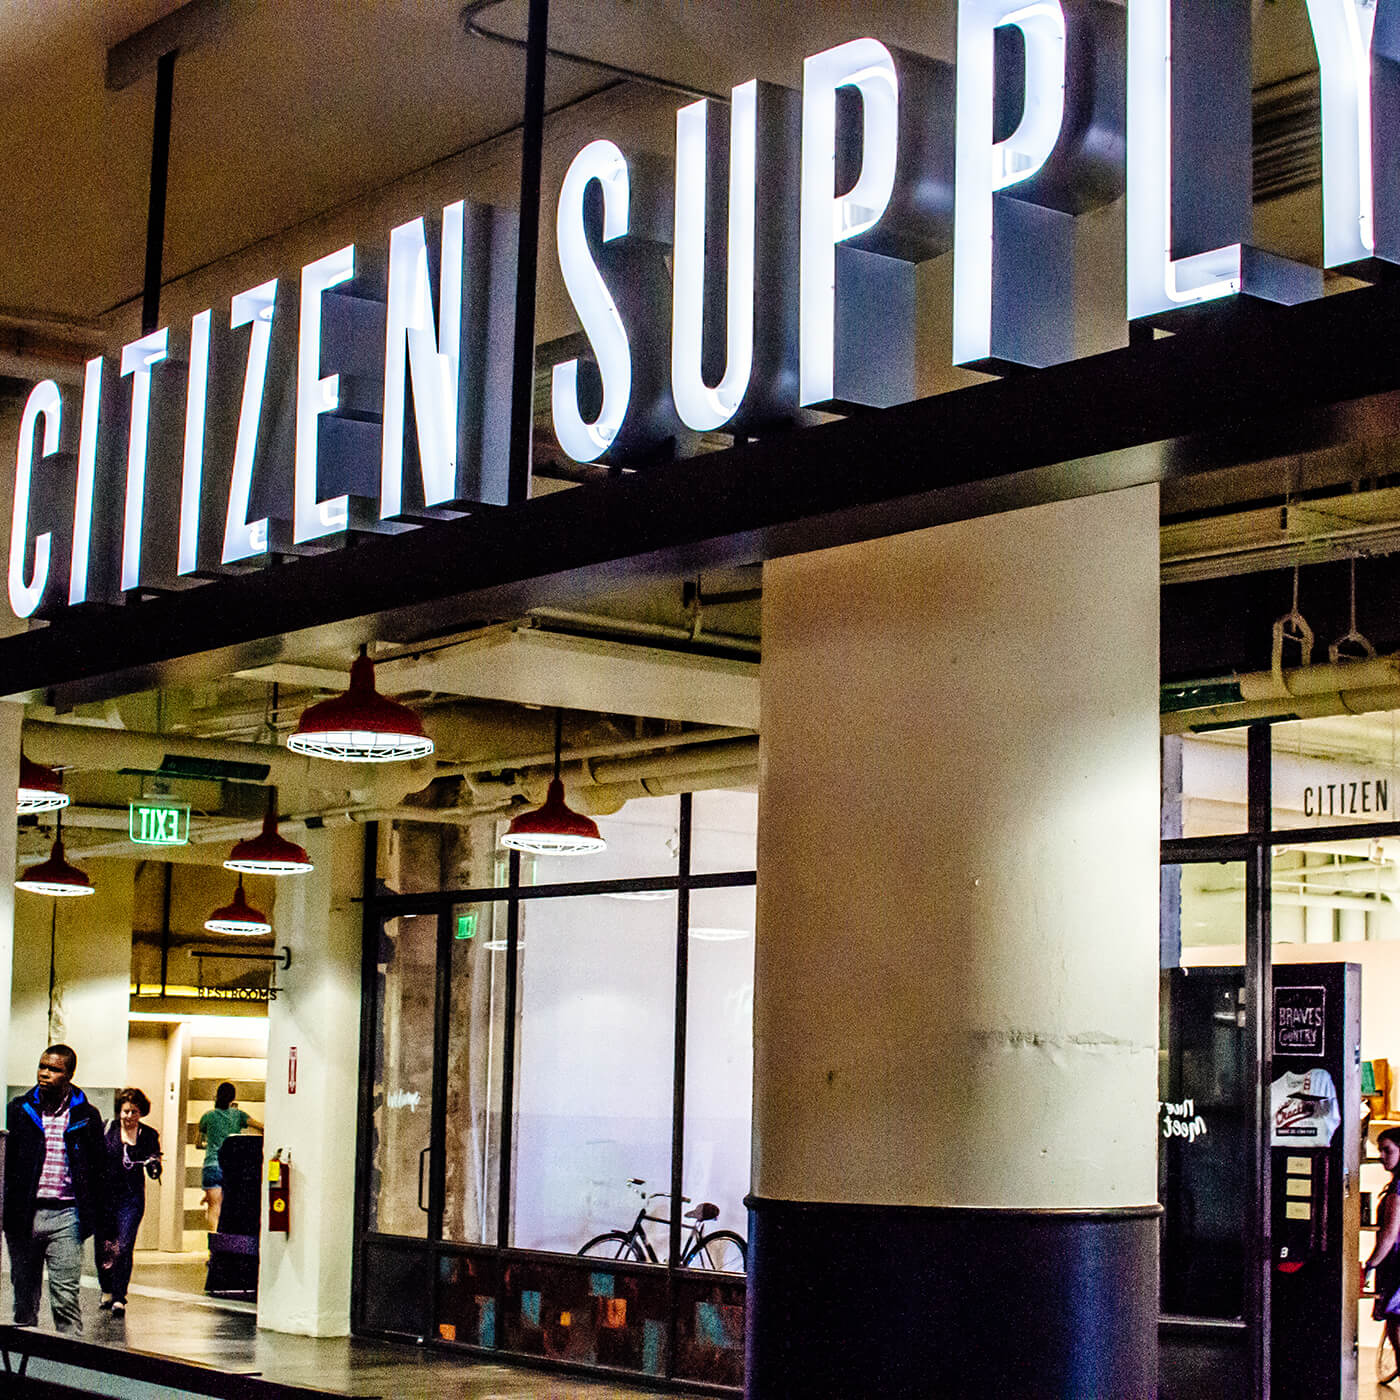 Citizen Supply - A marketplace in Ponce City Market that showcases local Atlanta artisans and makers.View Project →